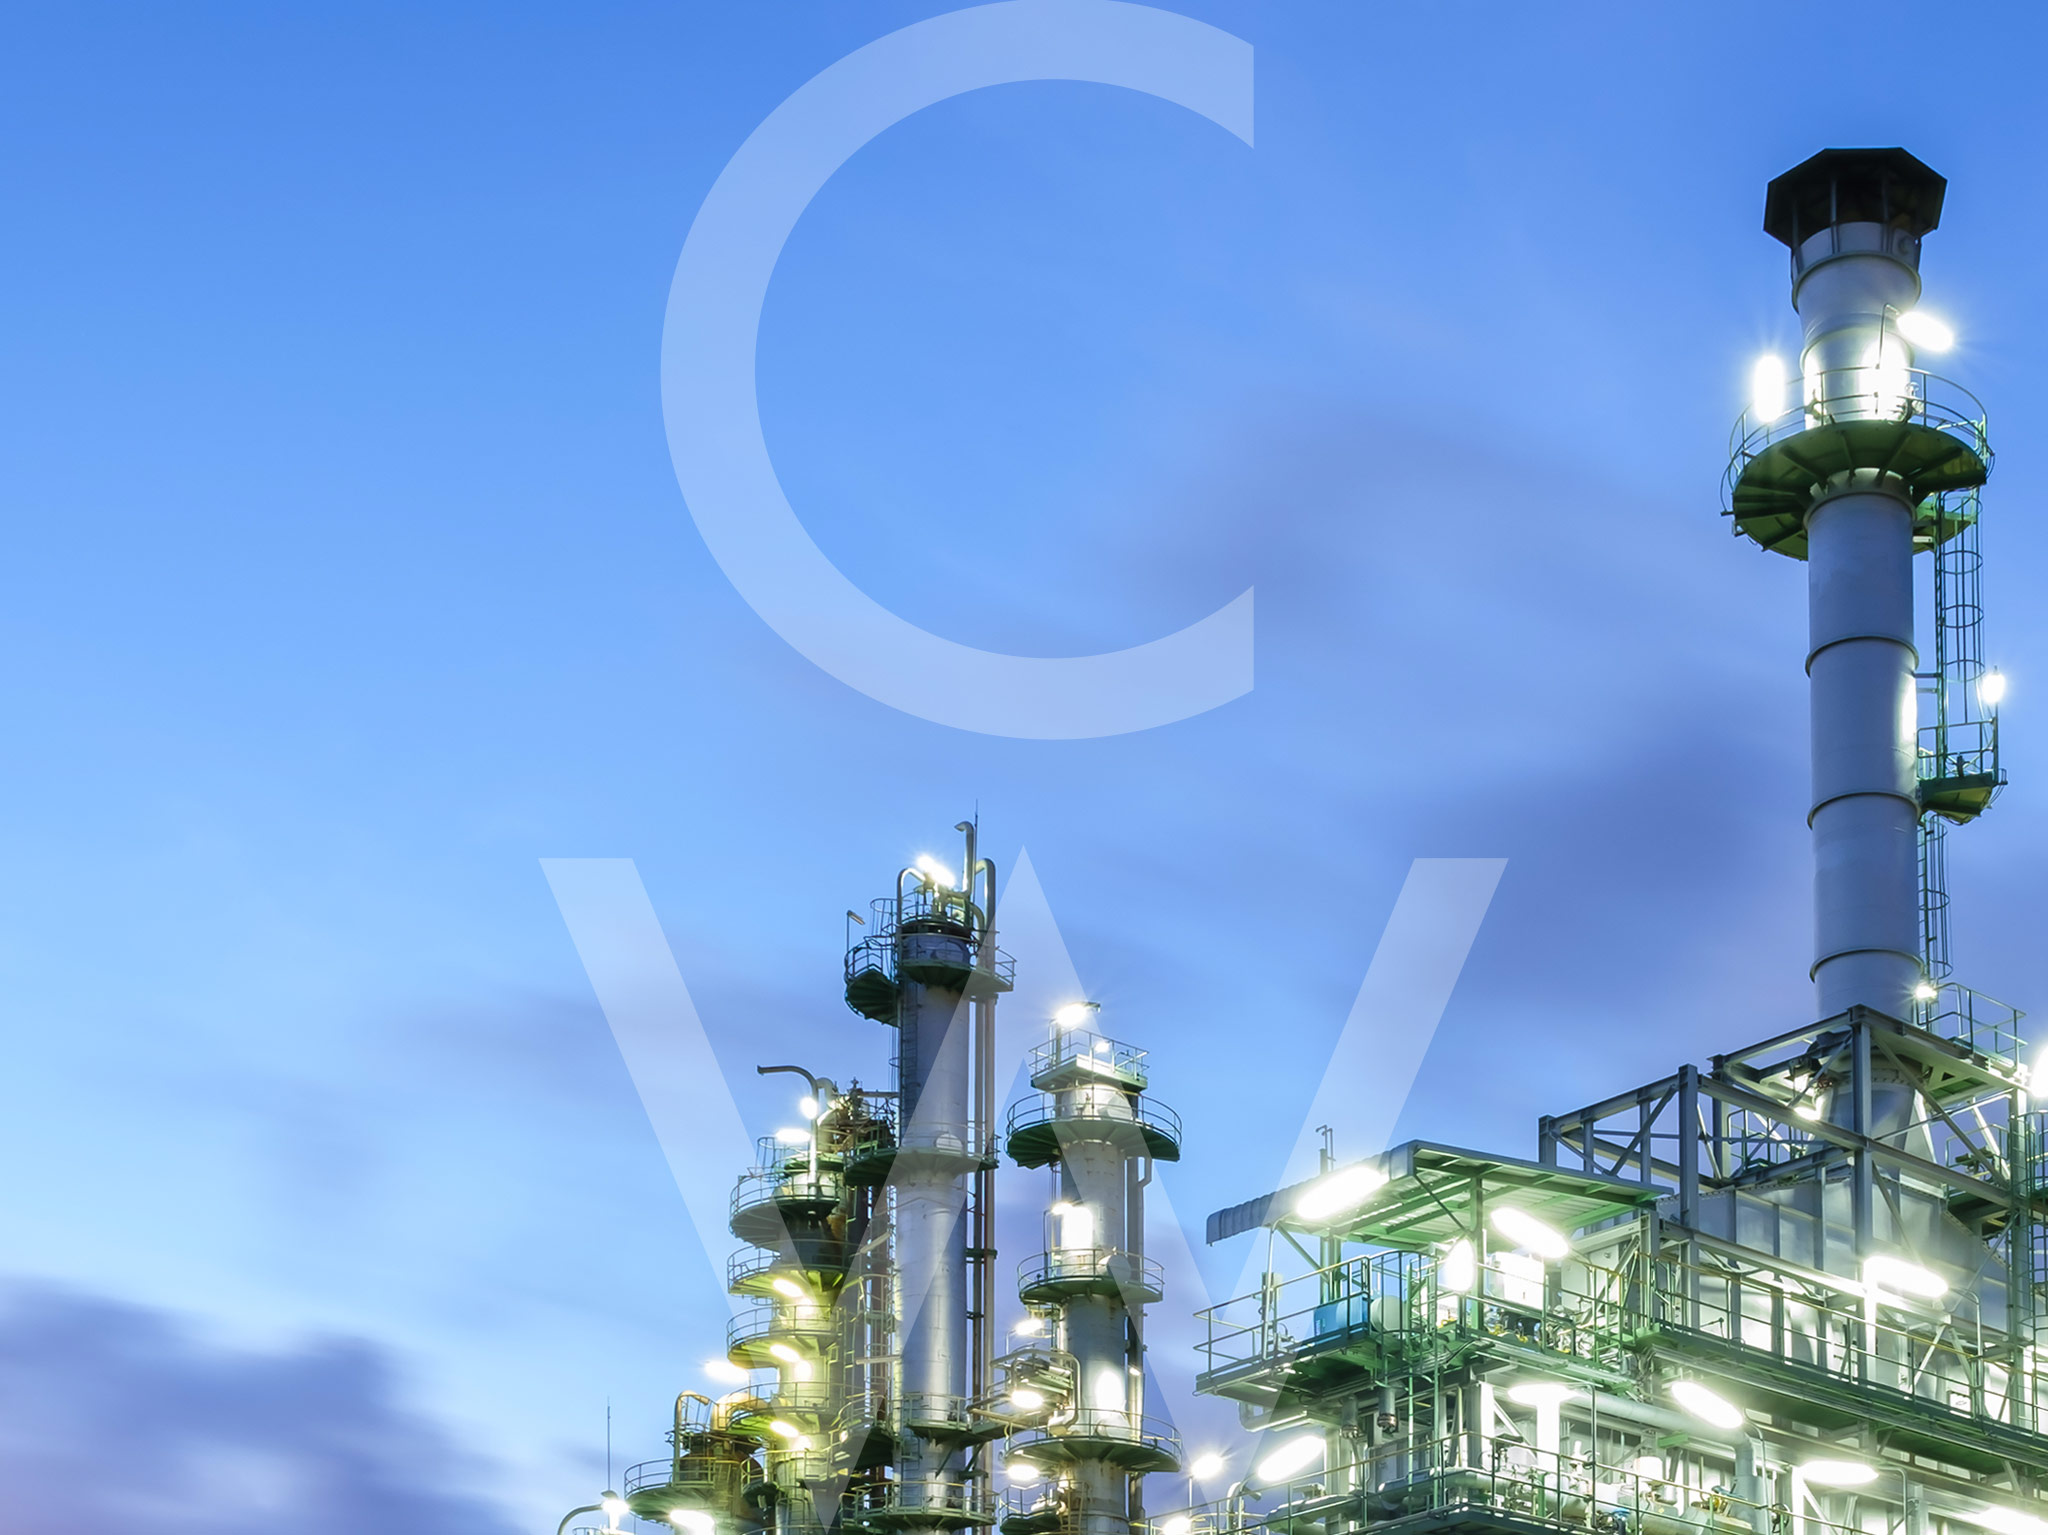 This is an image of an oil and gas factory.